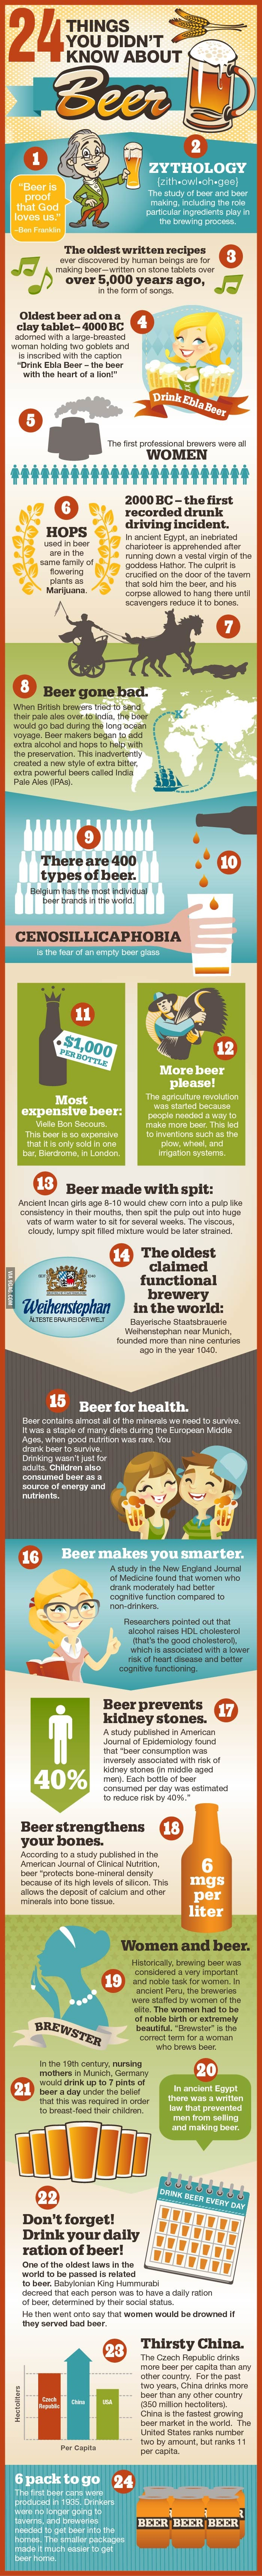 A few beer facts